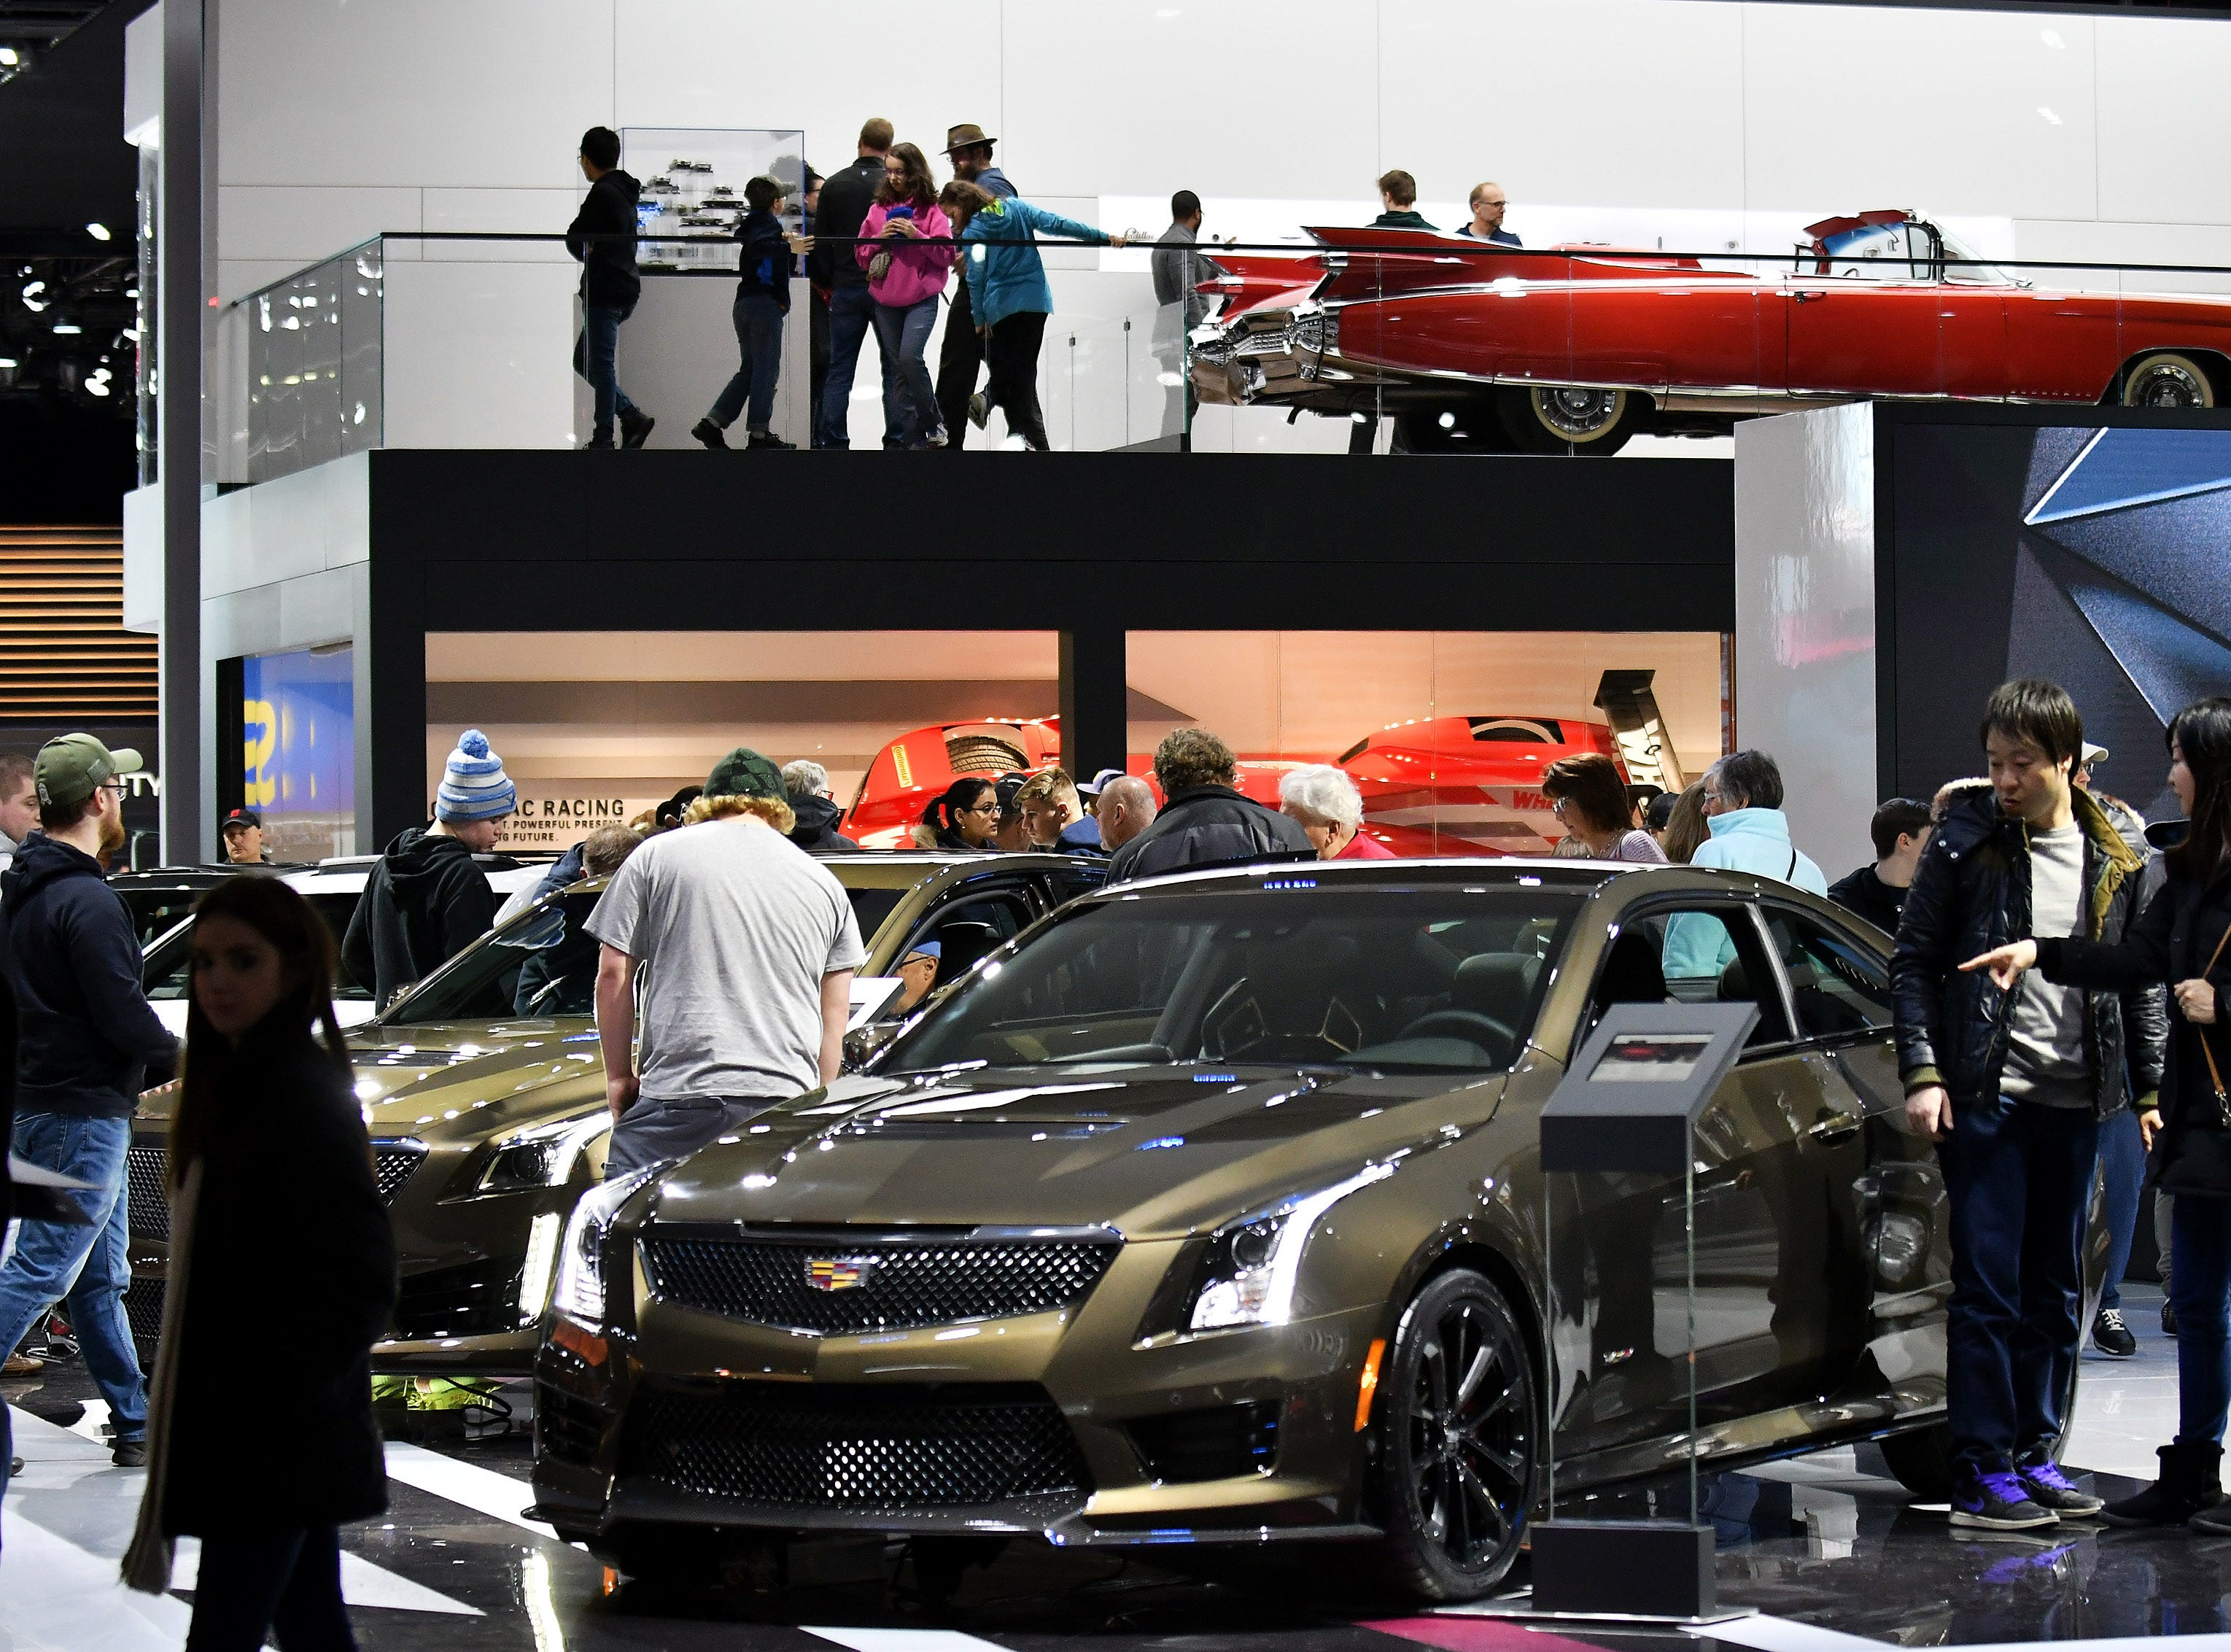 People check out the cars at the Cadillac display including the ATS.